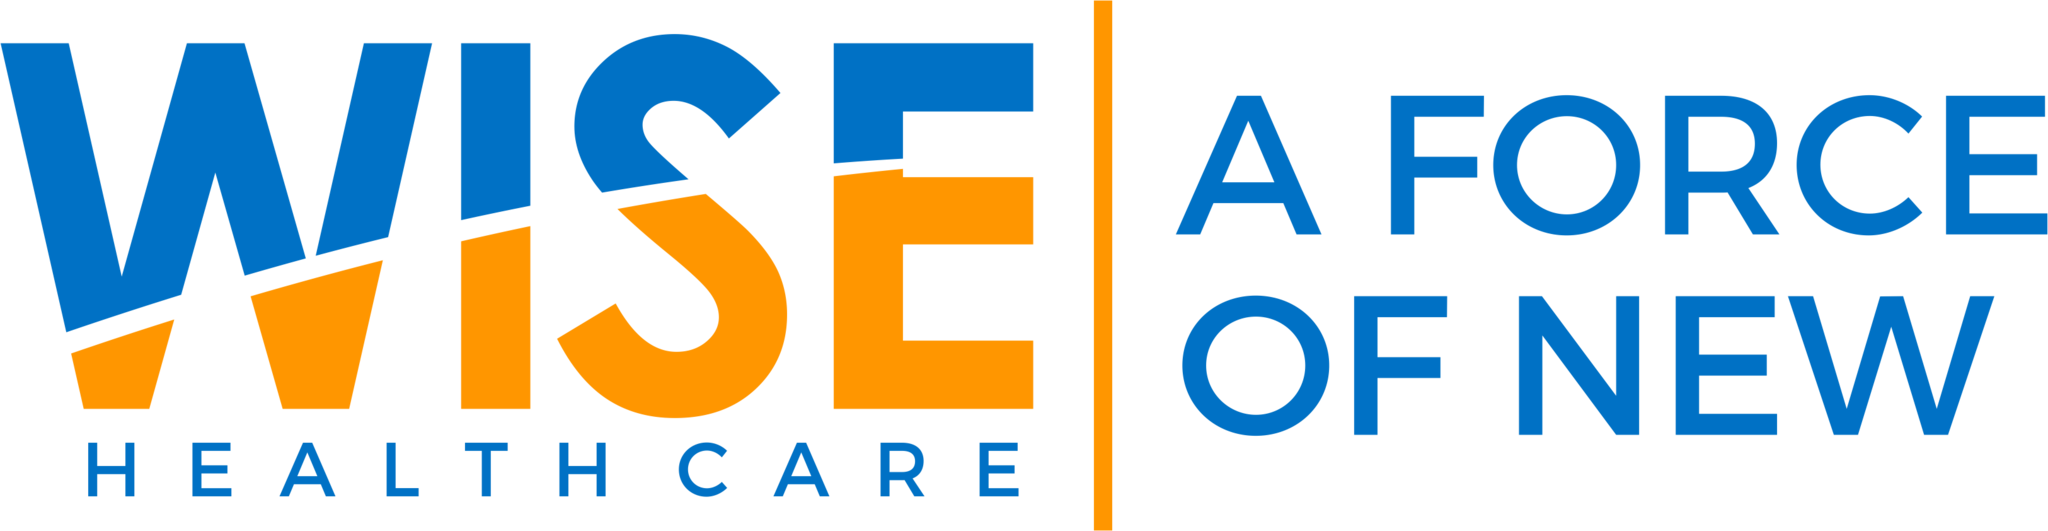 Wise Healthcare